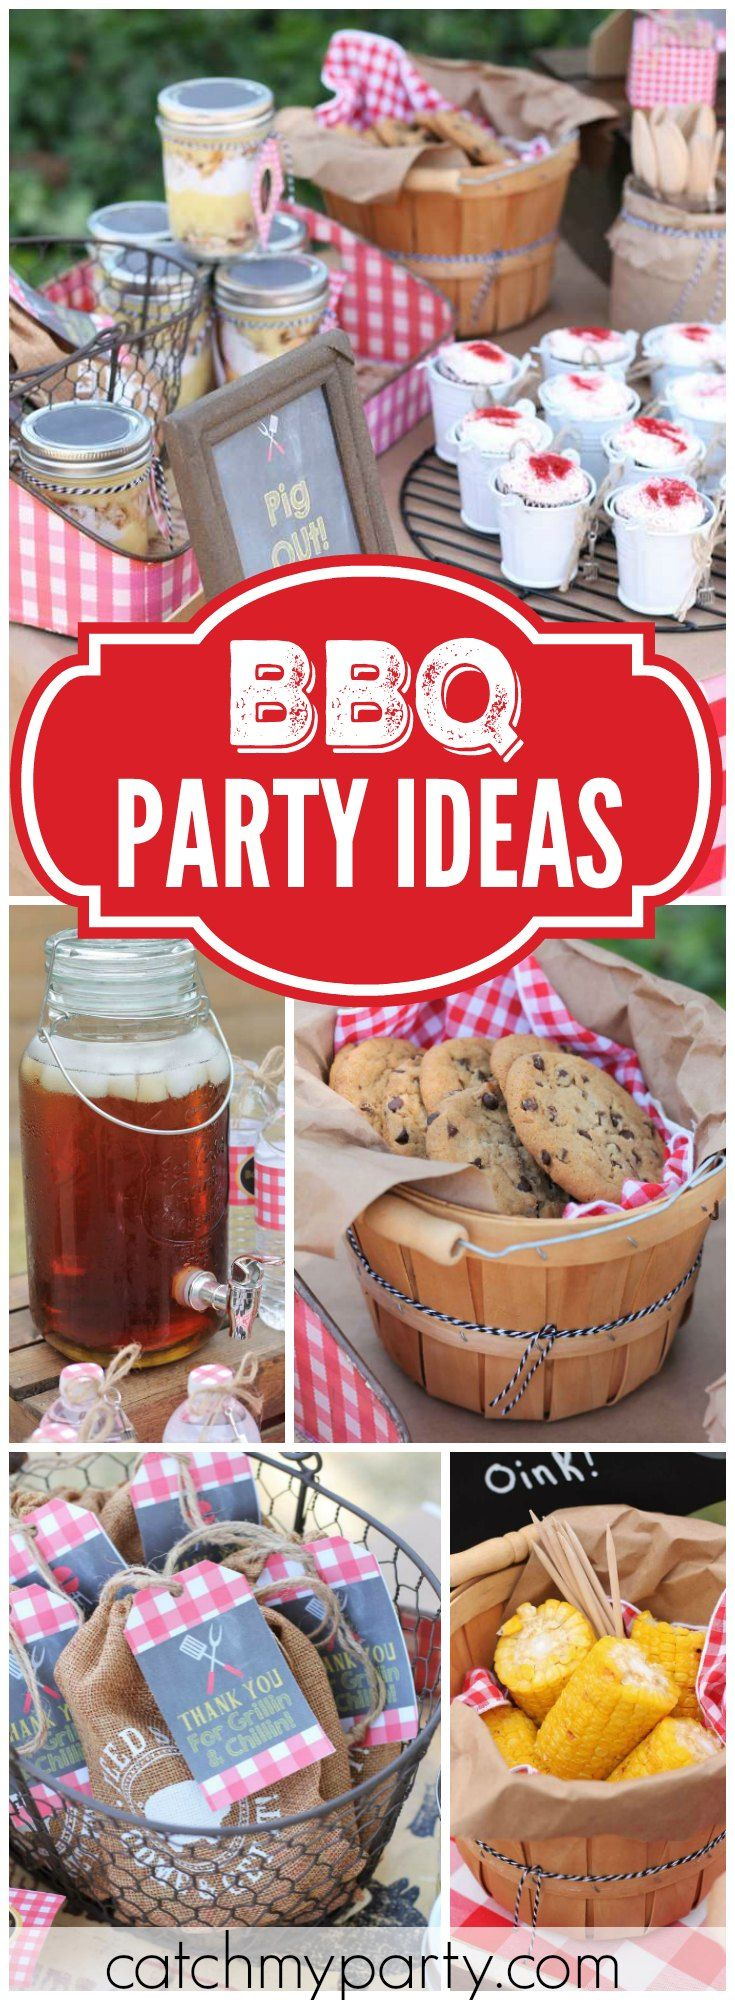 Backyard Bbq Summer Chillin Grillin July 4th Party Ideas for Backyard Bbq Ideas Decorations